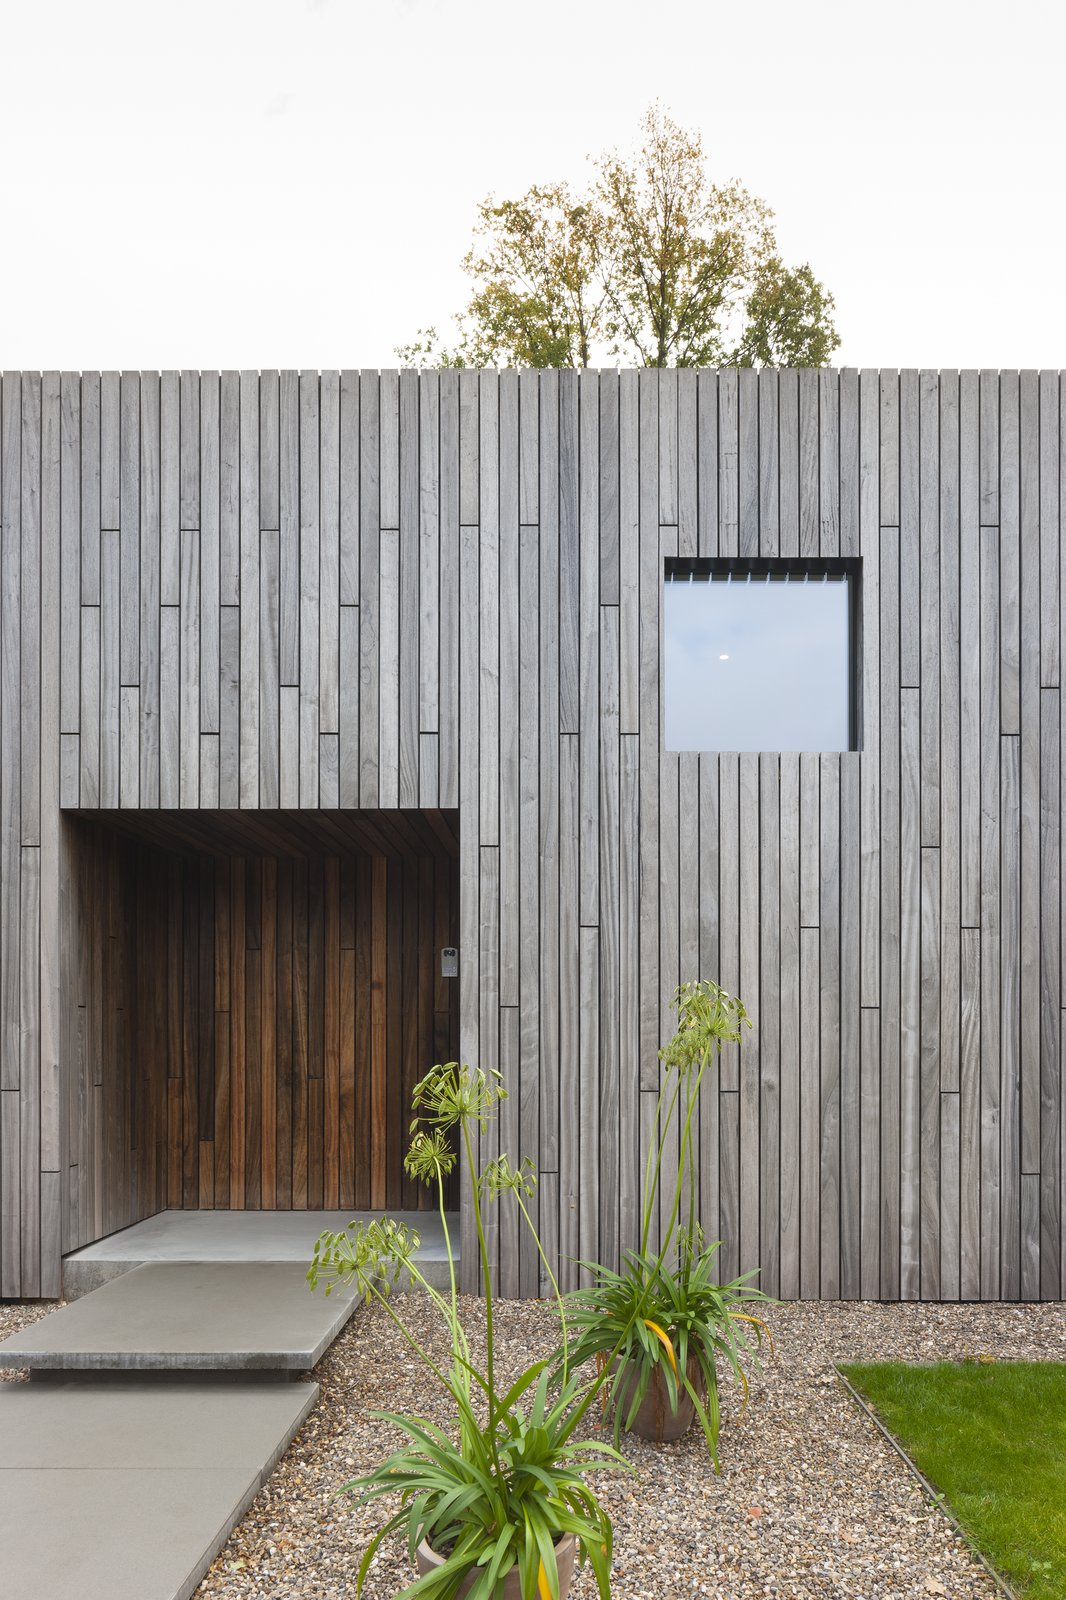 Like the windows, the front door is also a square.